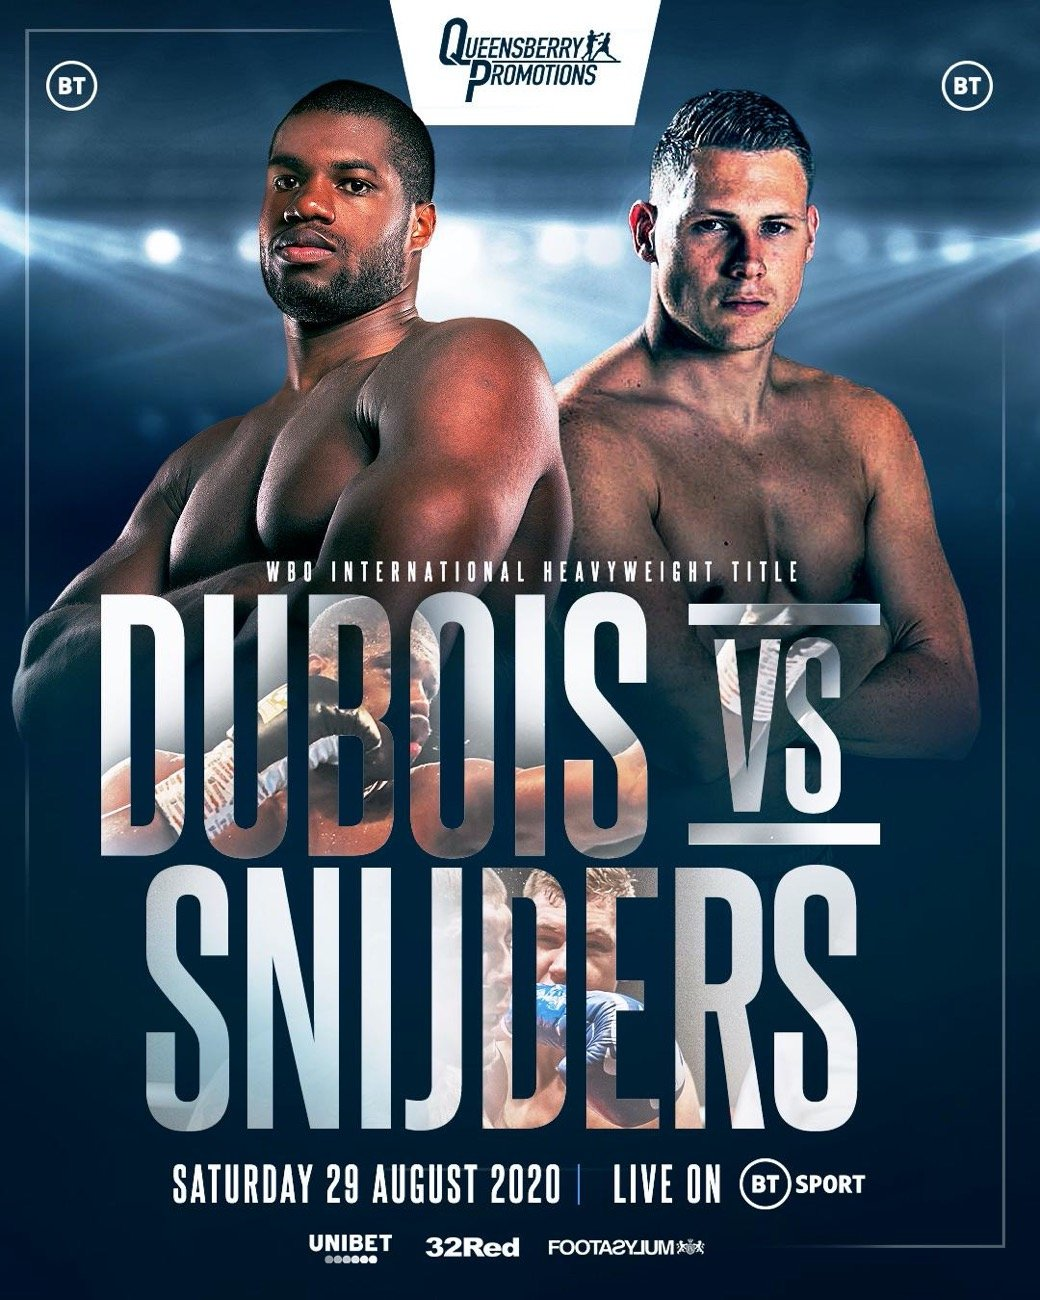 Dubois vs Snijders - ESPN+, BT Sport - Aug. 29 @ London | London | England | United Kingdom